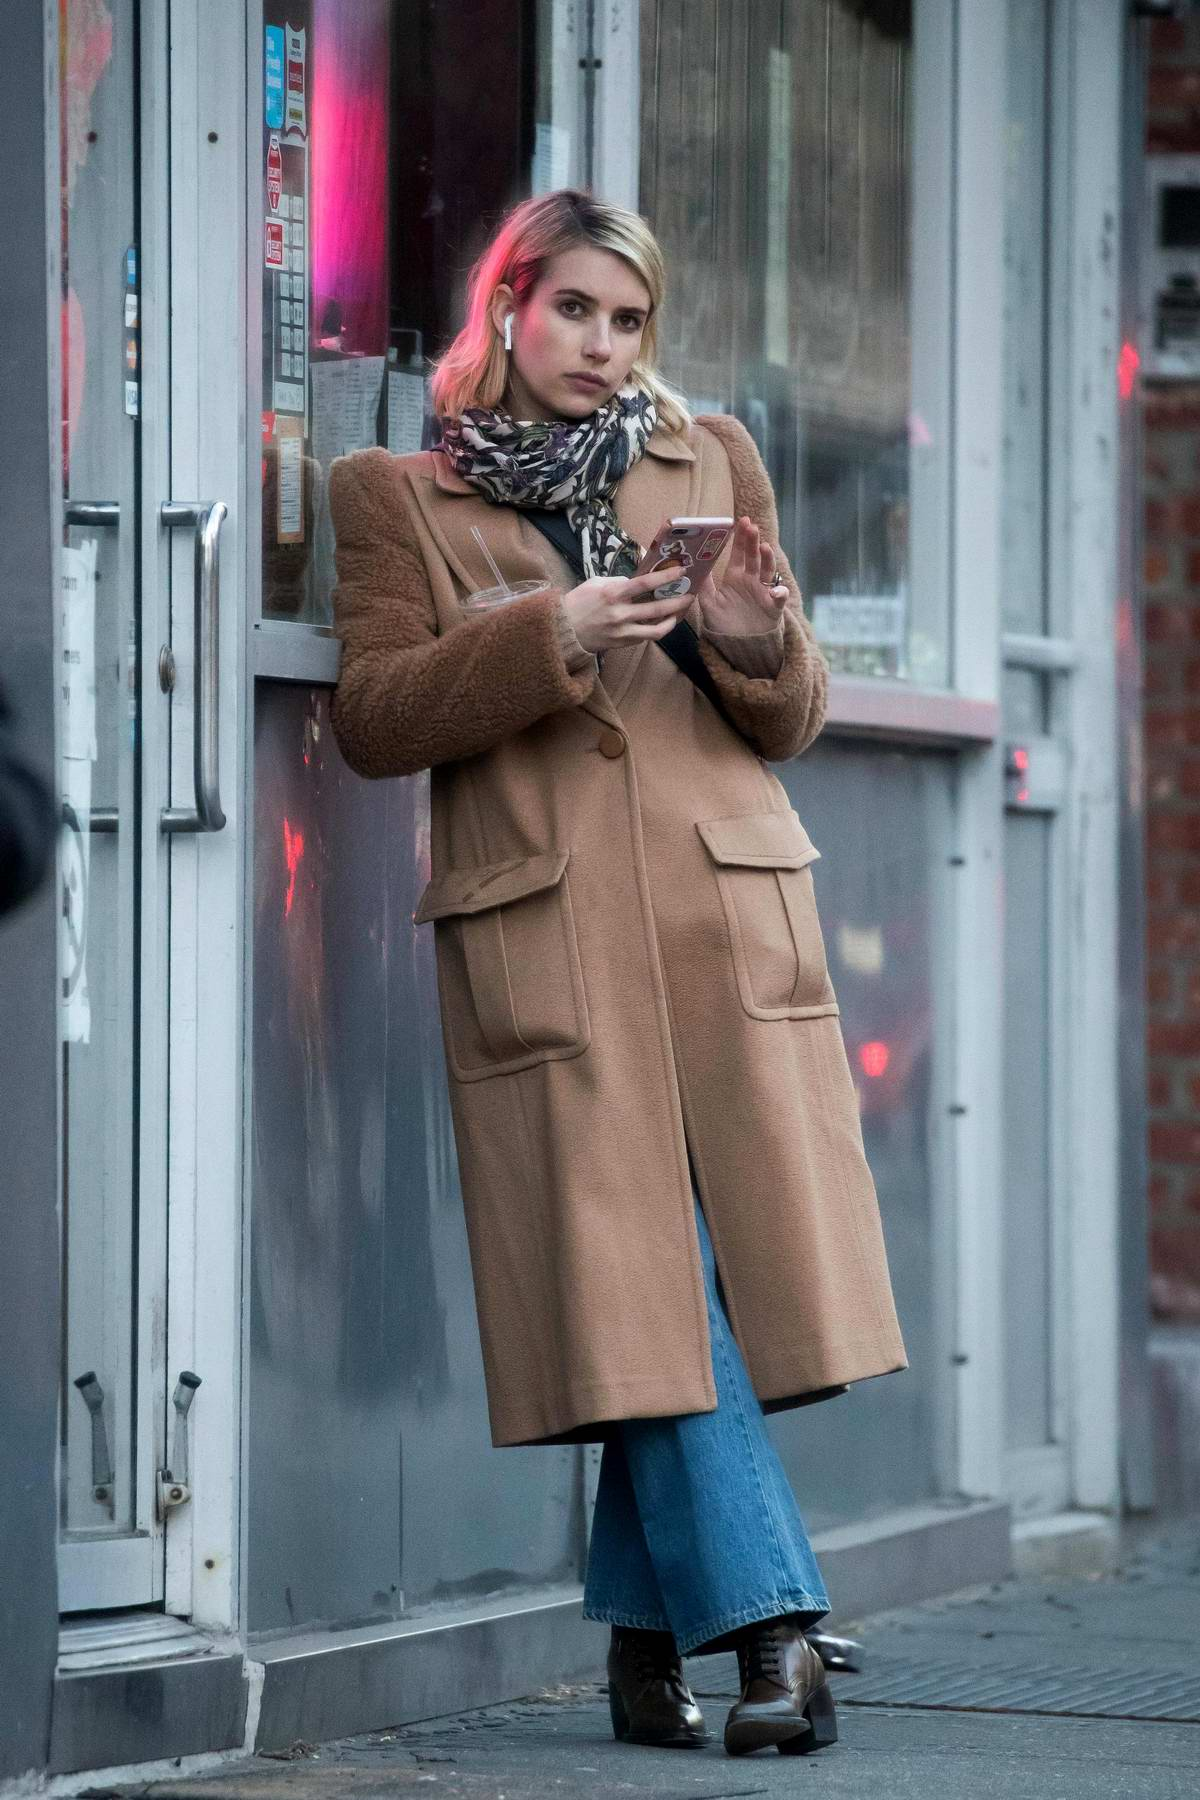 Emma Roberts looked busy on her phone while out on Valentine's Day in New York City